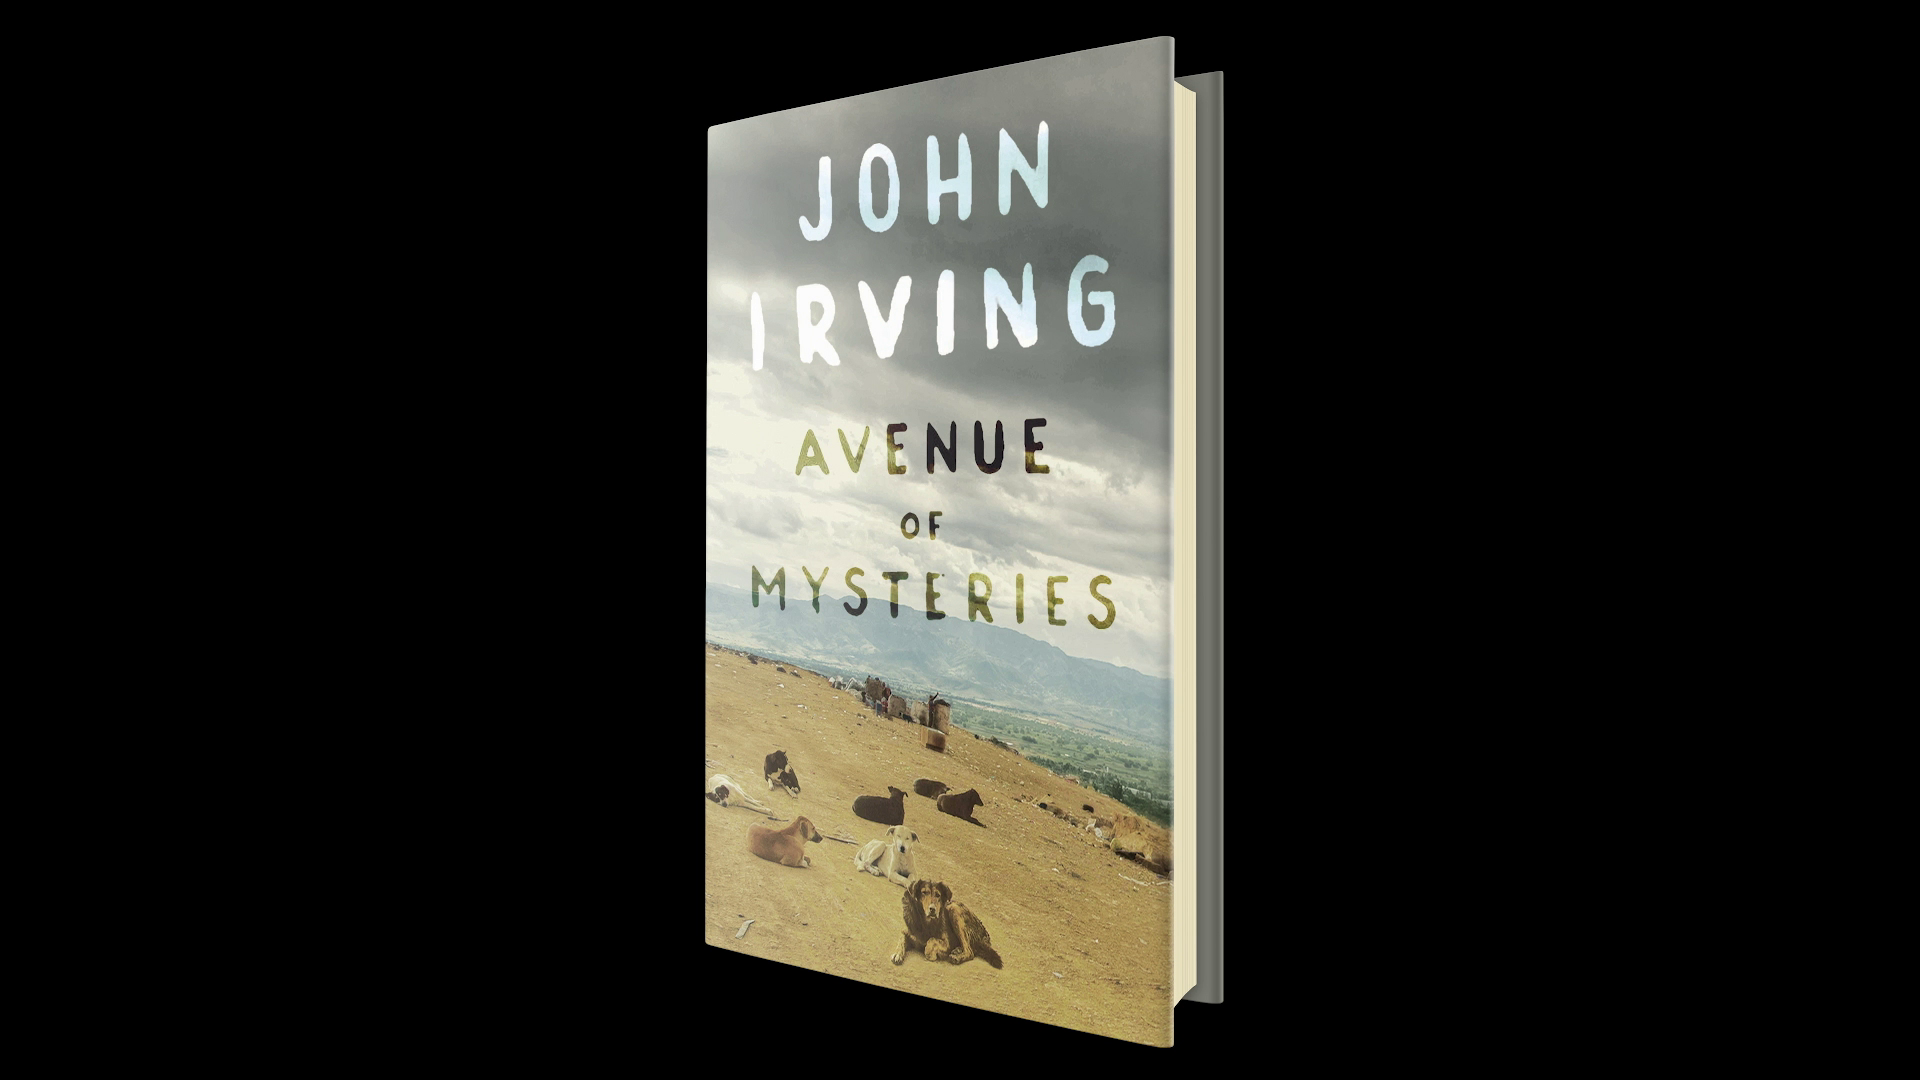 John Irving's 'avenue Of Mysteries'